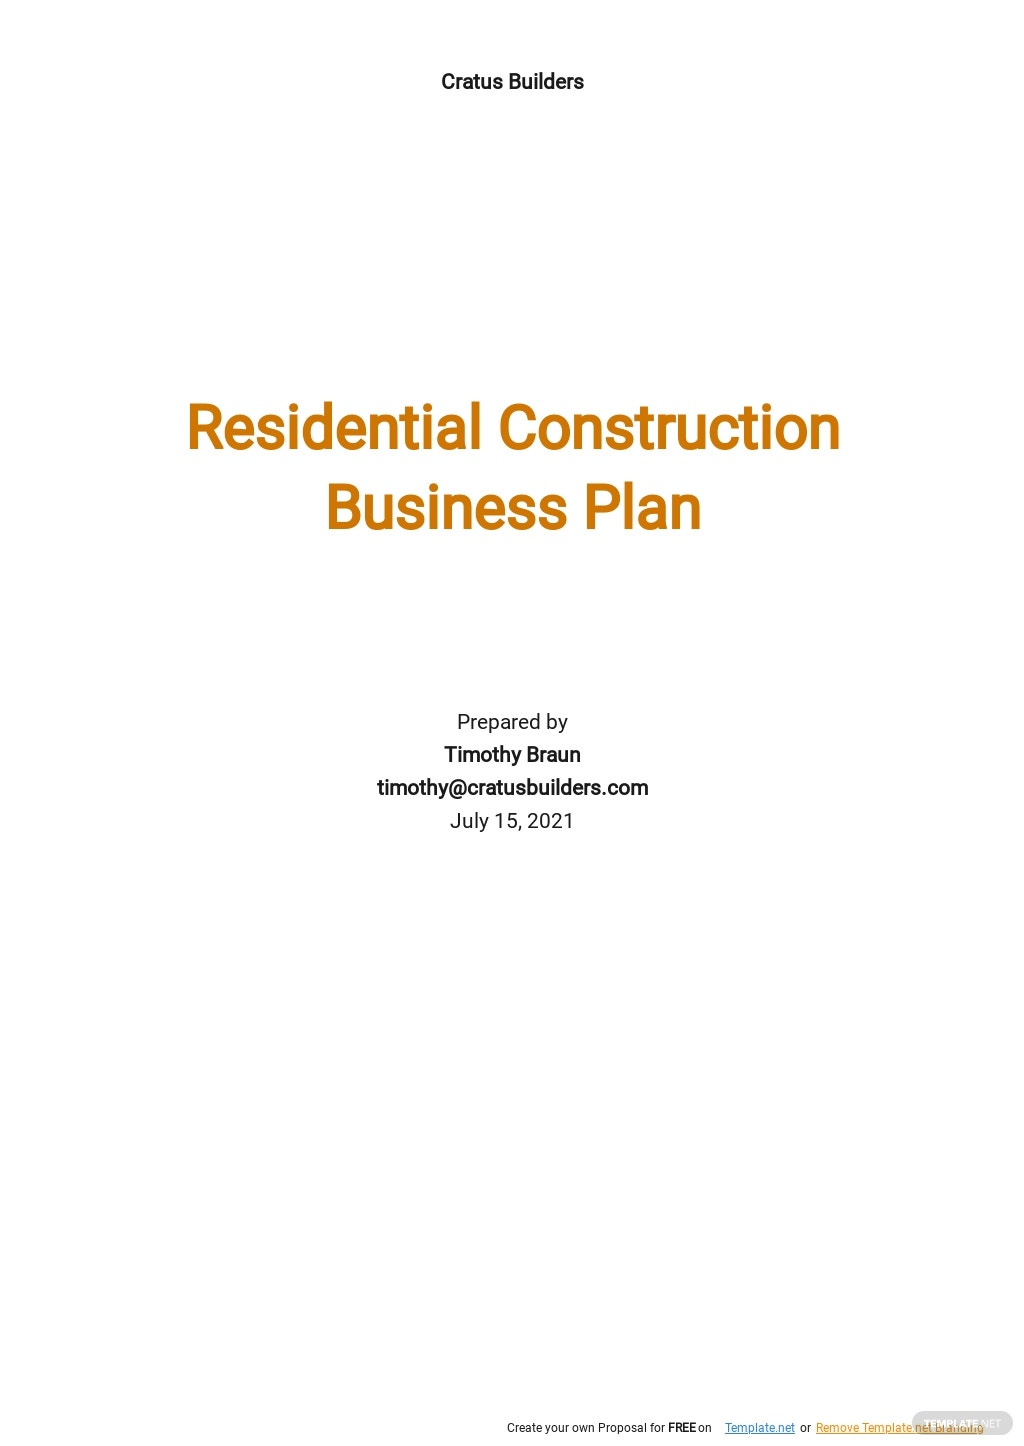 Residential Construction Business Plan Template.jpe